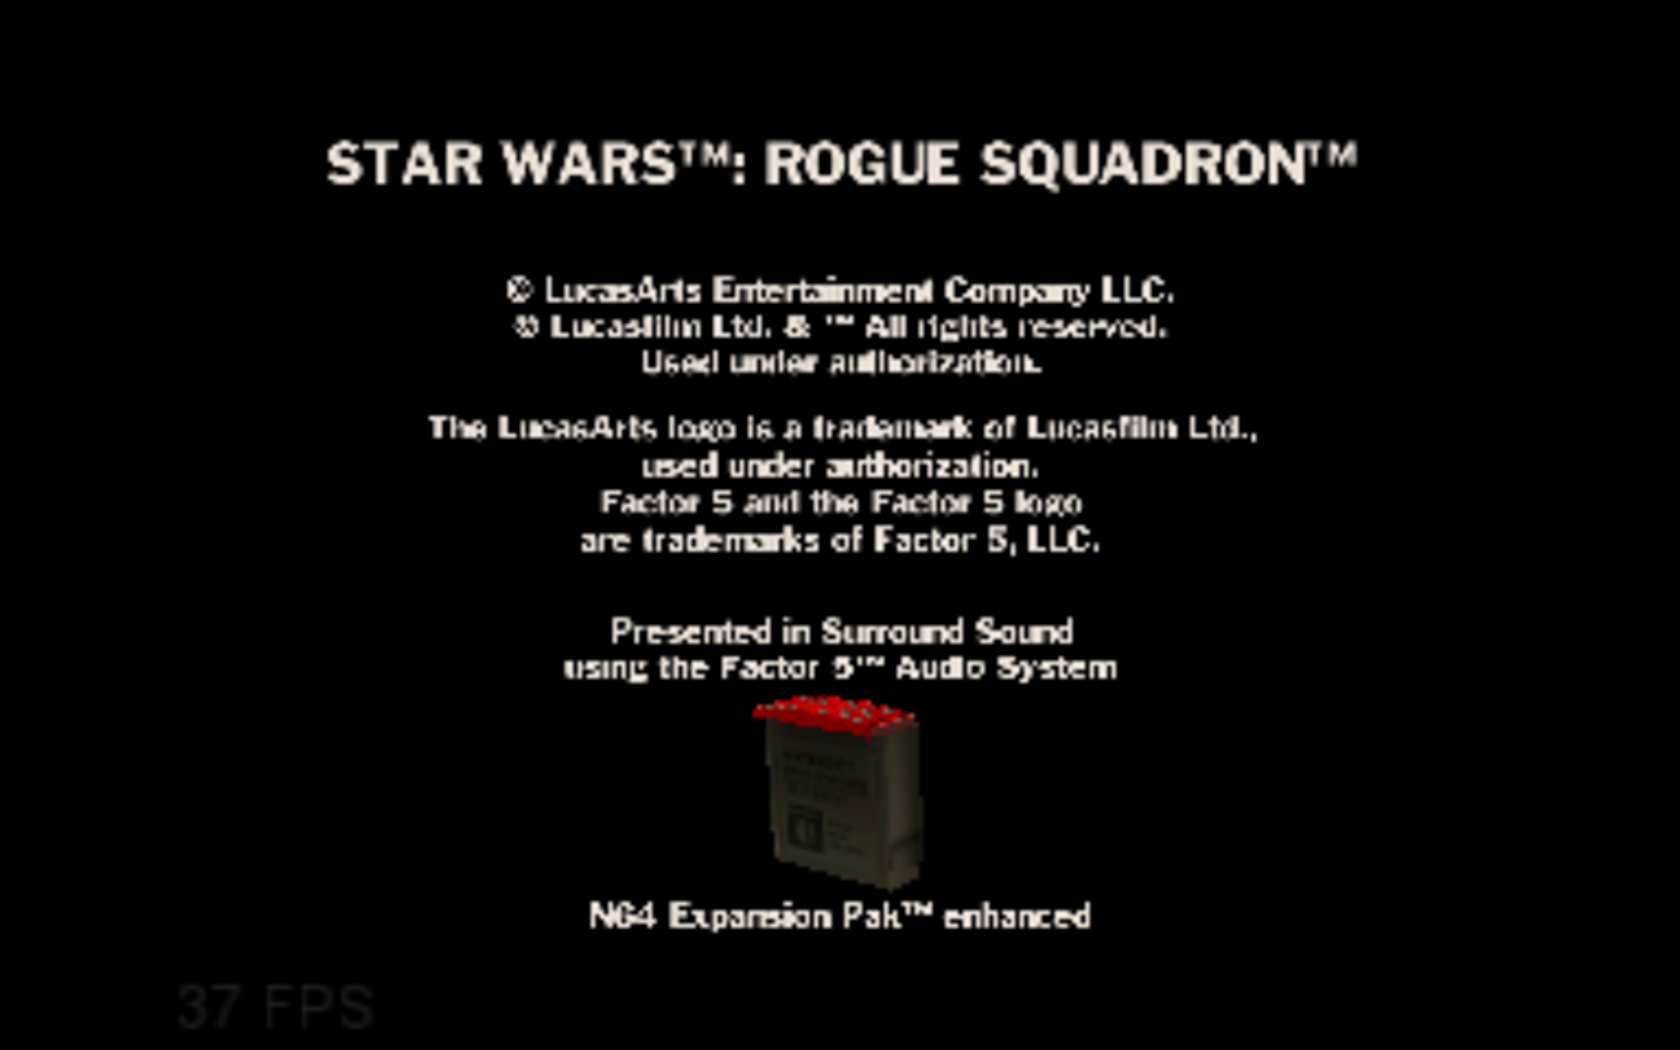 https://s3.eu-west-3.amazonaws.com/games.anthony-dessalles.com/Star Wars Rogue Squadron N64 2020 - Screenshots/star-wars-rogue-squadron-screenshot-2020112815351606577723.png